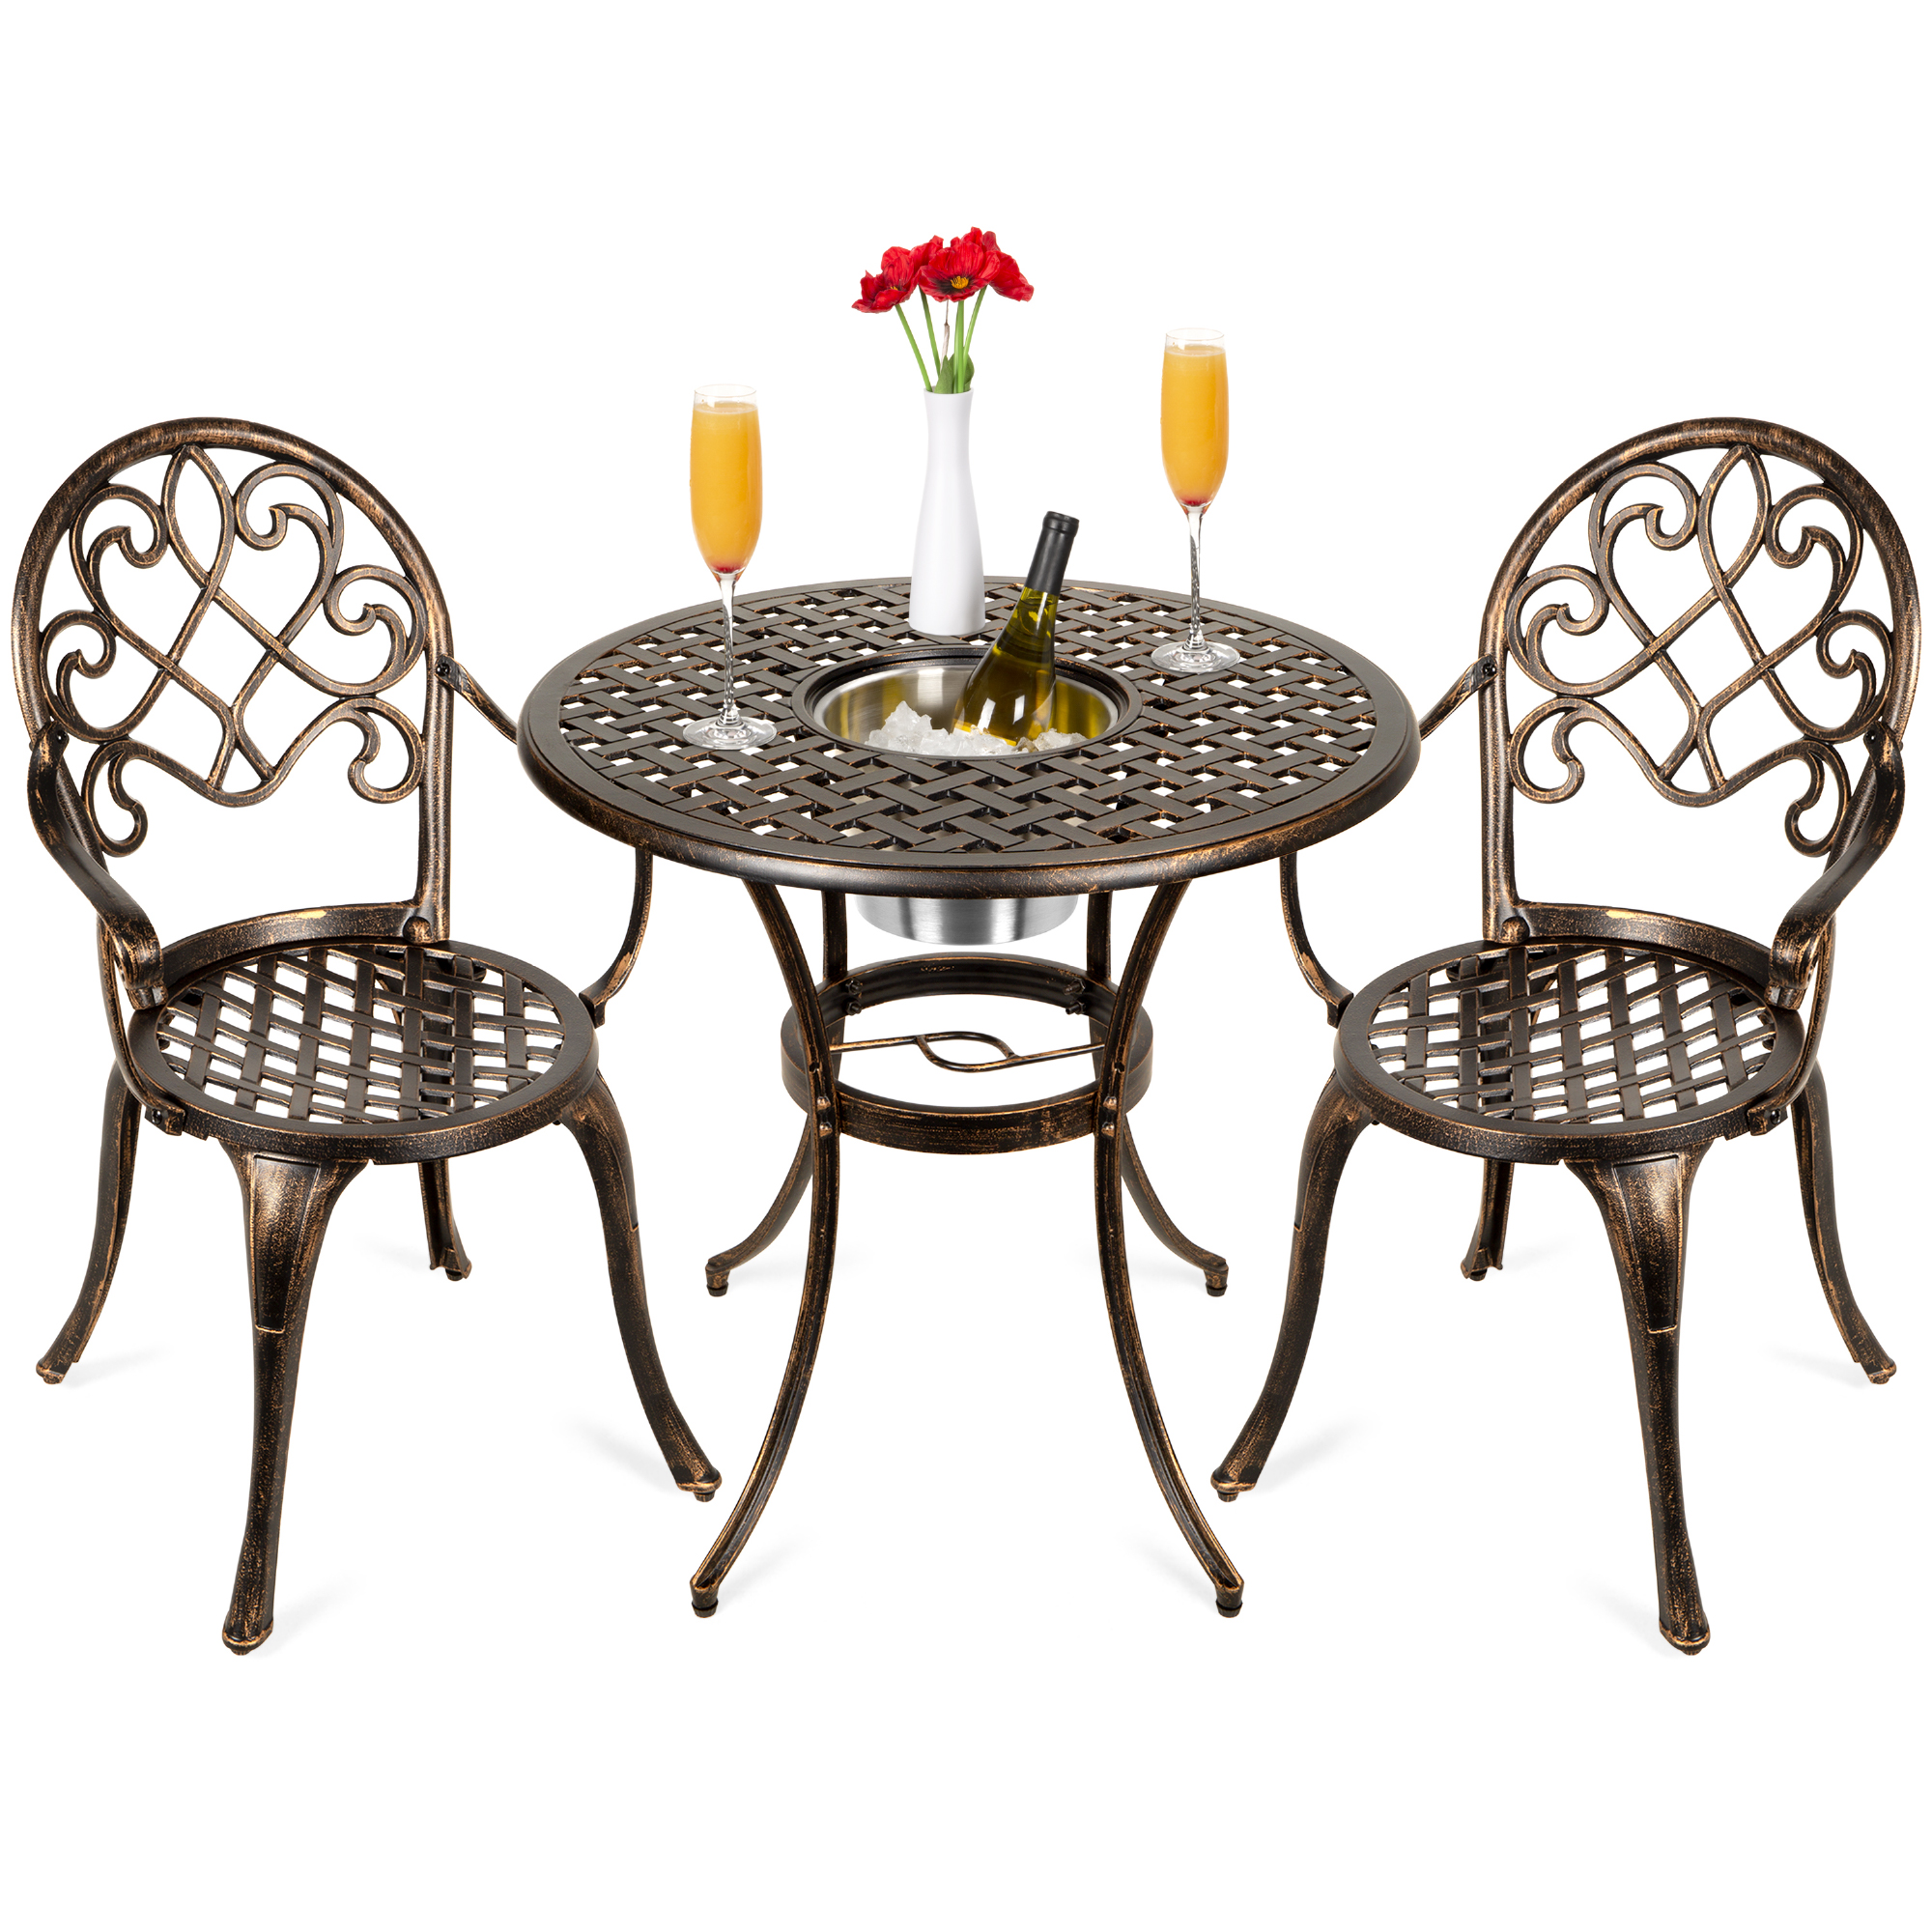 best choice products cast aluminum outdoor patio bistro table set w attached ice bucket 2 chairs copper finish walmart com